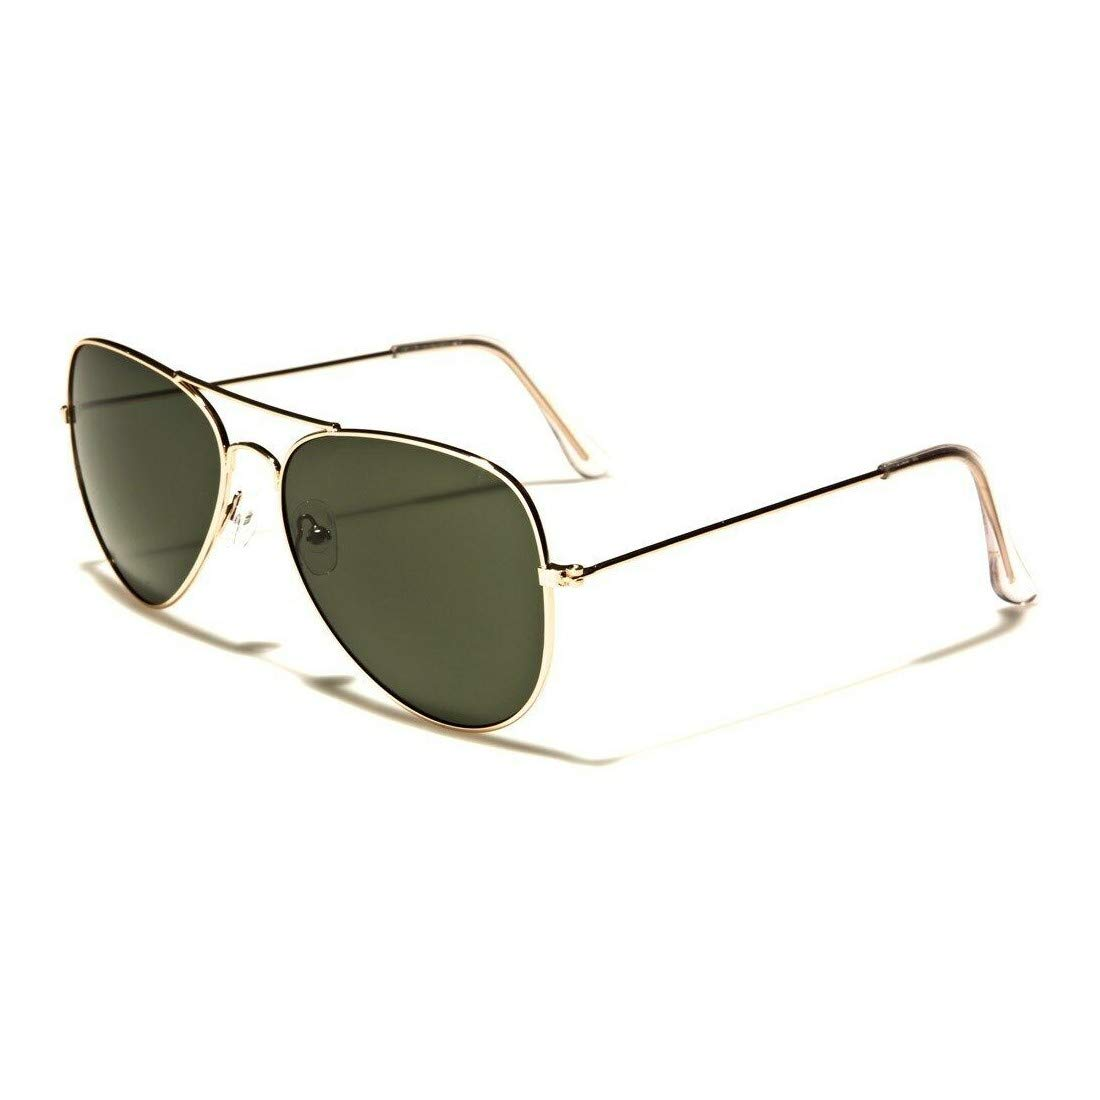 Retro Aviator Air Force Sunglasses Ultra Thin Rims Men Women Fashion Shades